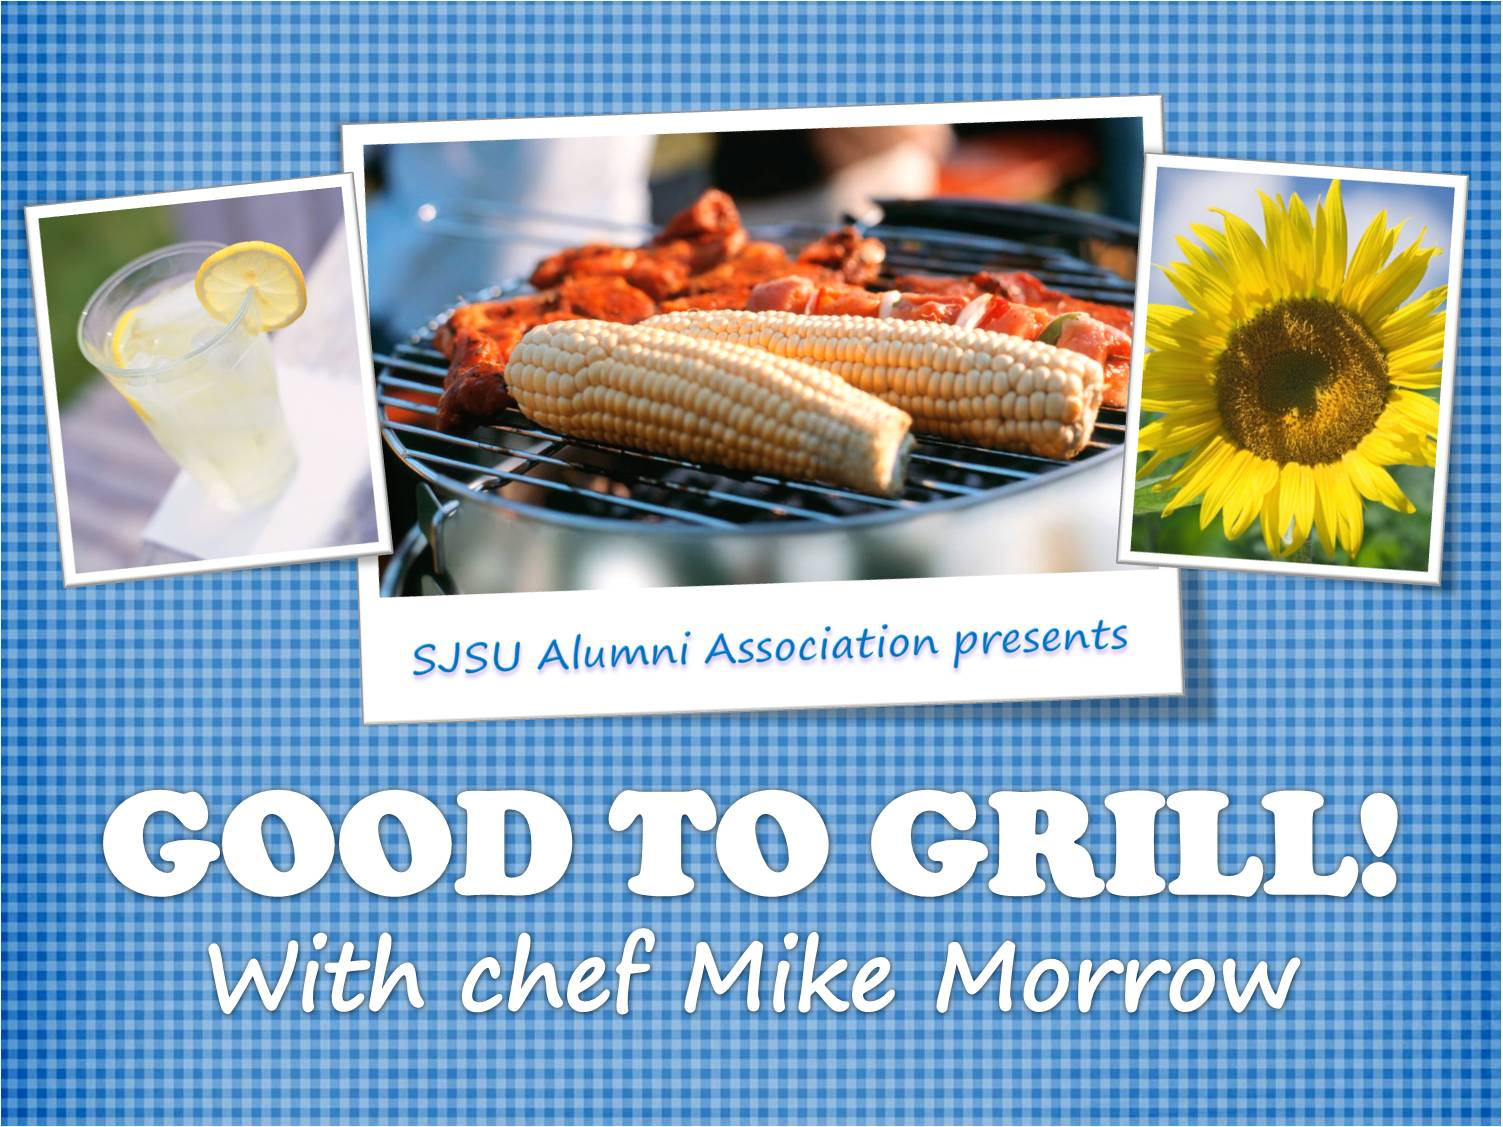 Good to Grill with Chef Mike Morrow